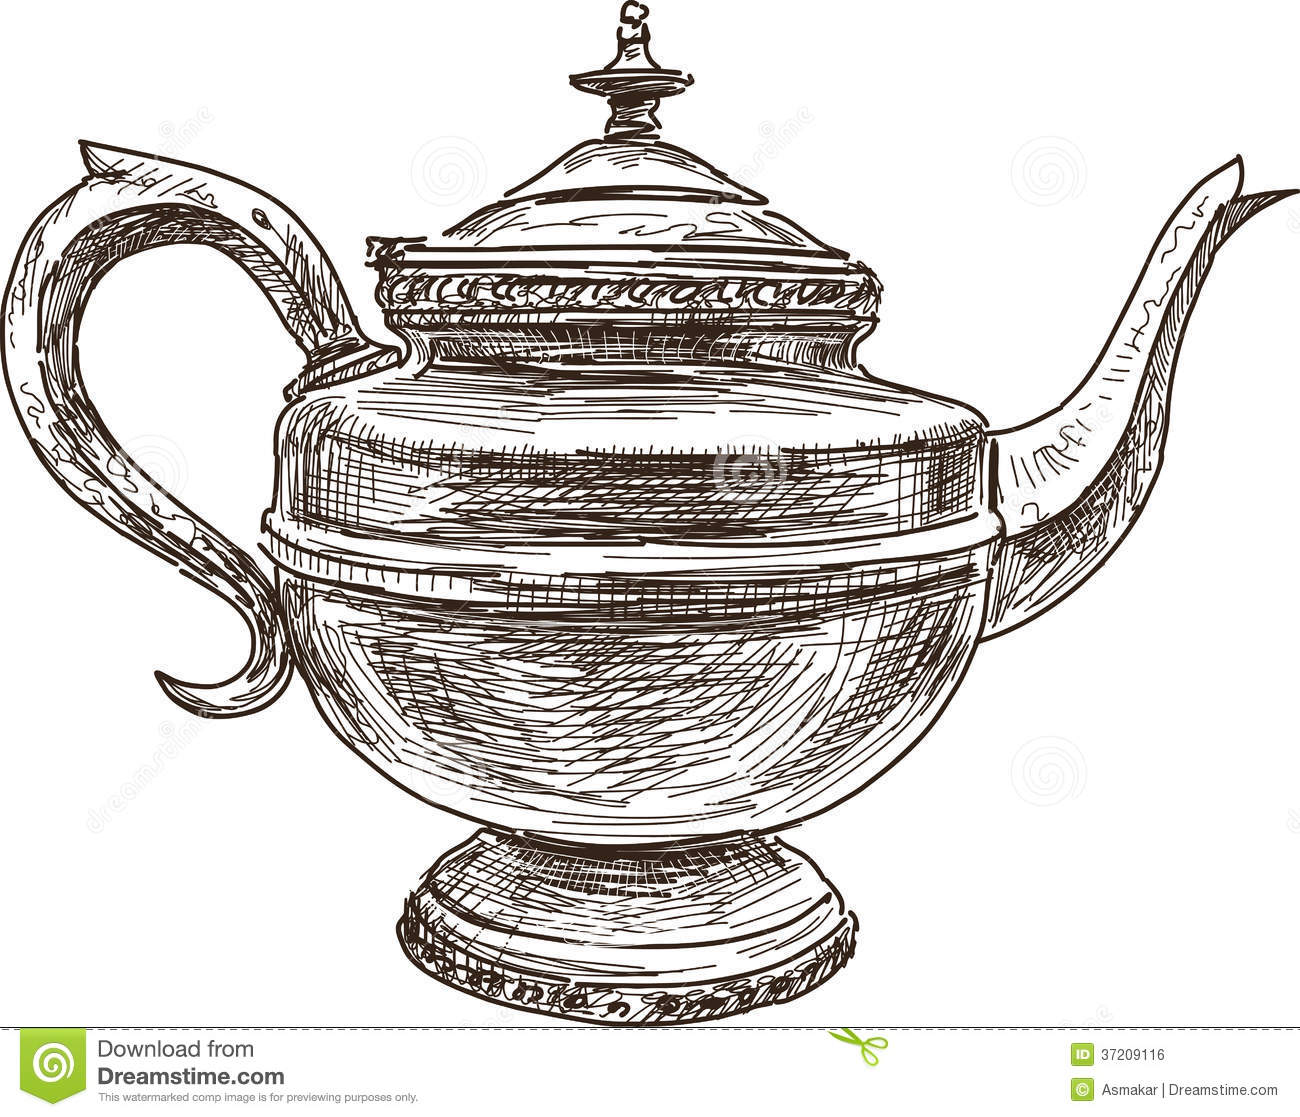 Antique Teapot Royalty Free Stock Image - Image: 37209116